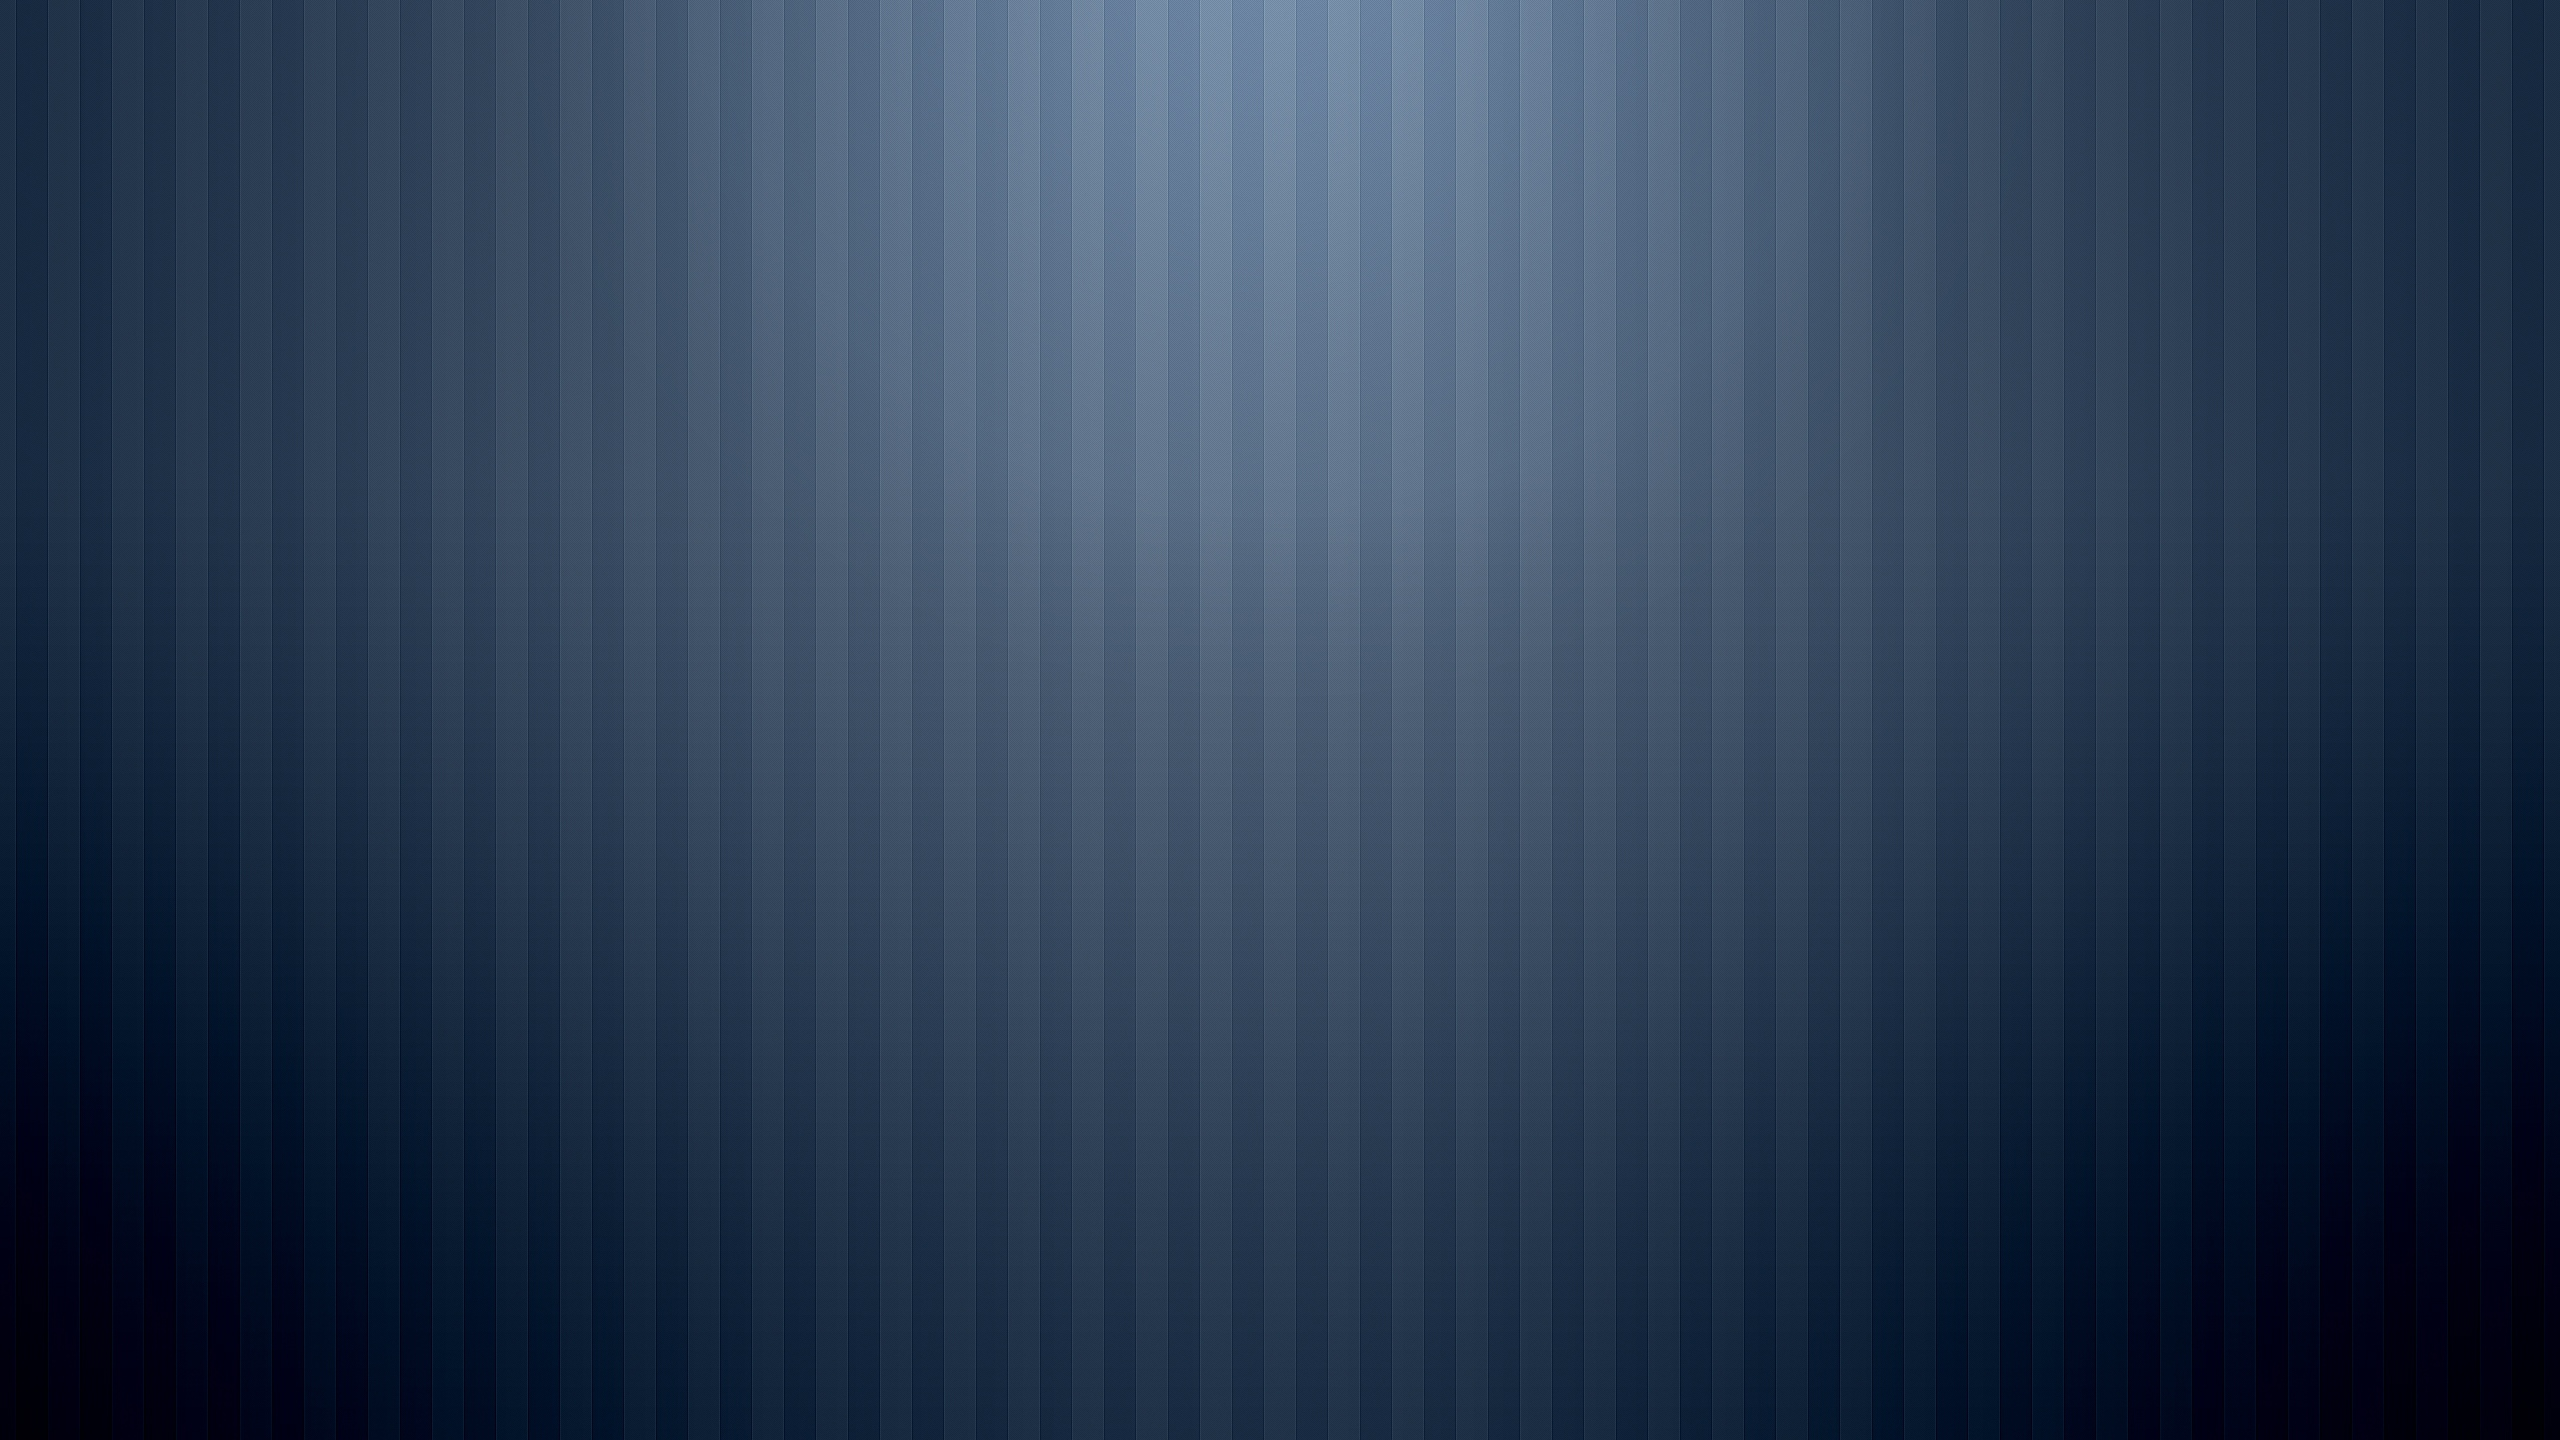 Download Wallpaper 2560x1440 blue stripes vertical dark Mac iMac 27 2560x1440